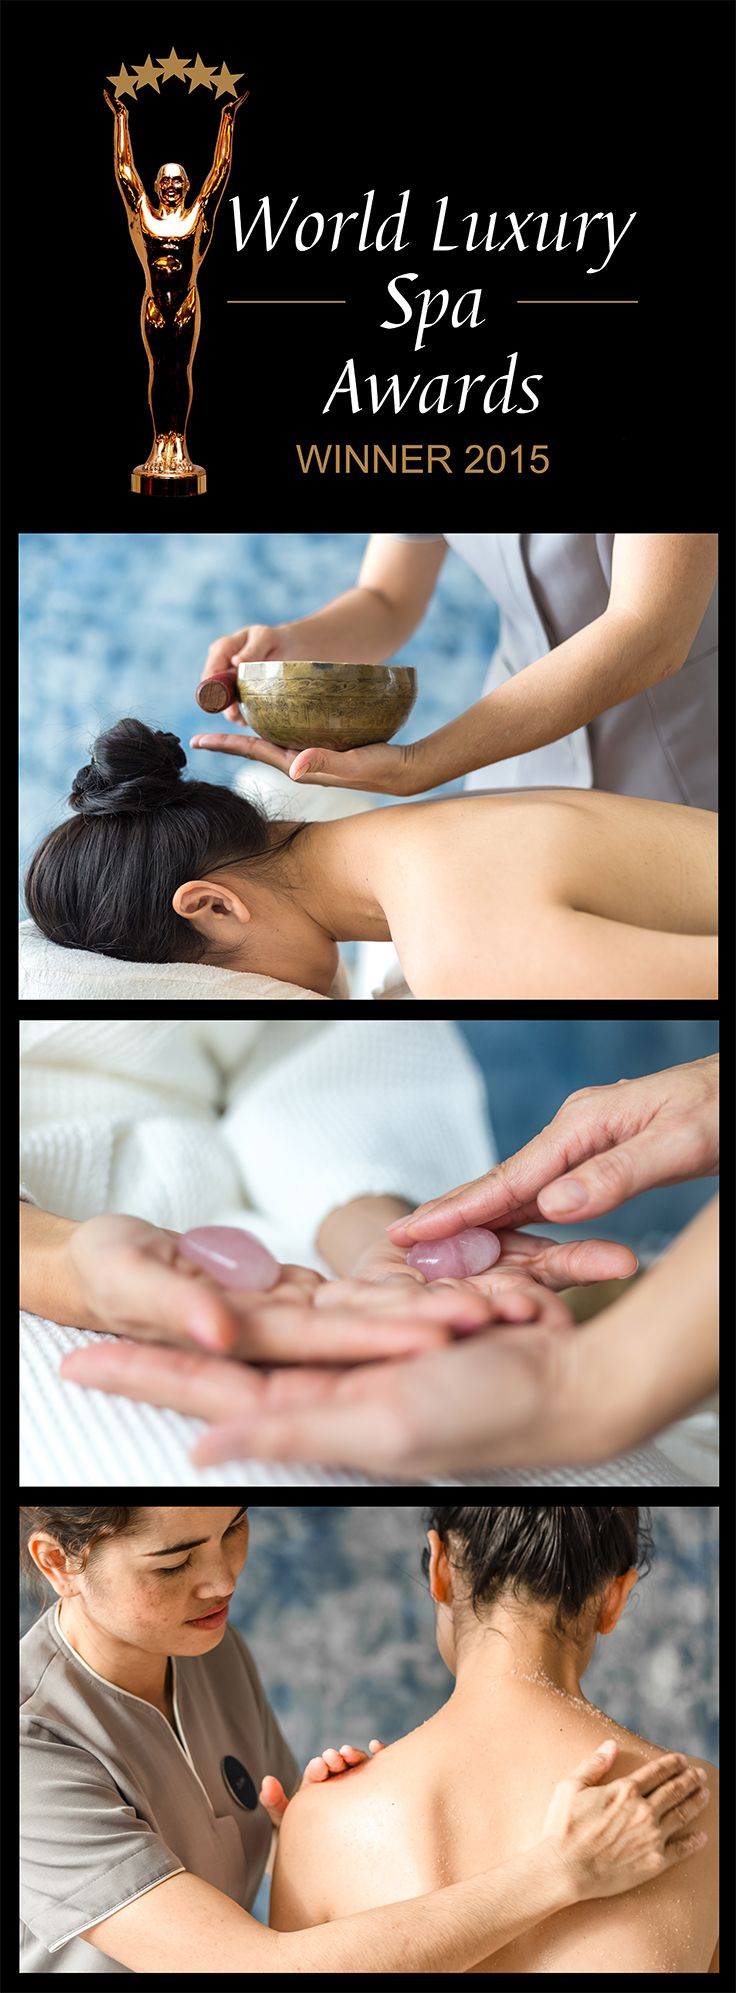 Amazing treatments and unforgettable experiences at Infinite Luxury Spa.  Two award wining spas from World